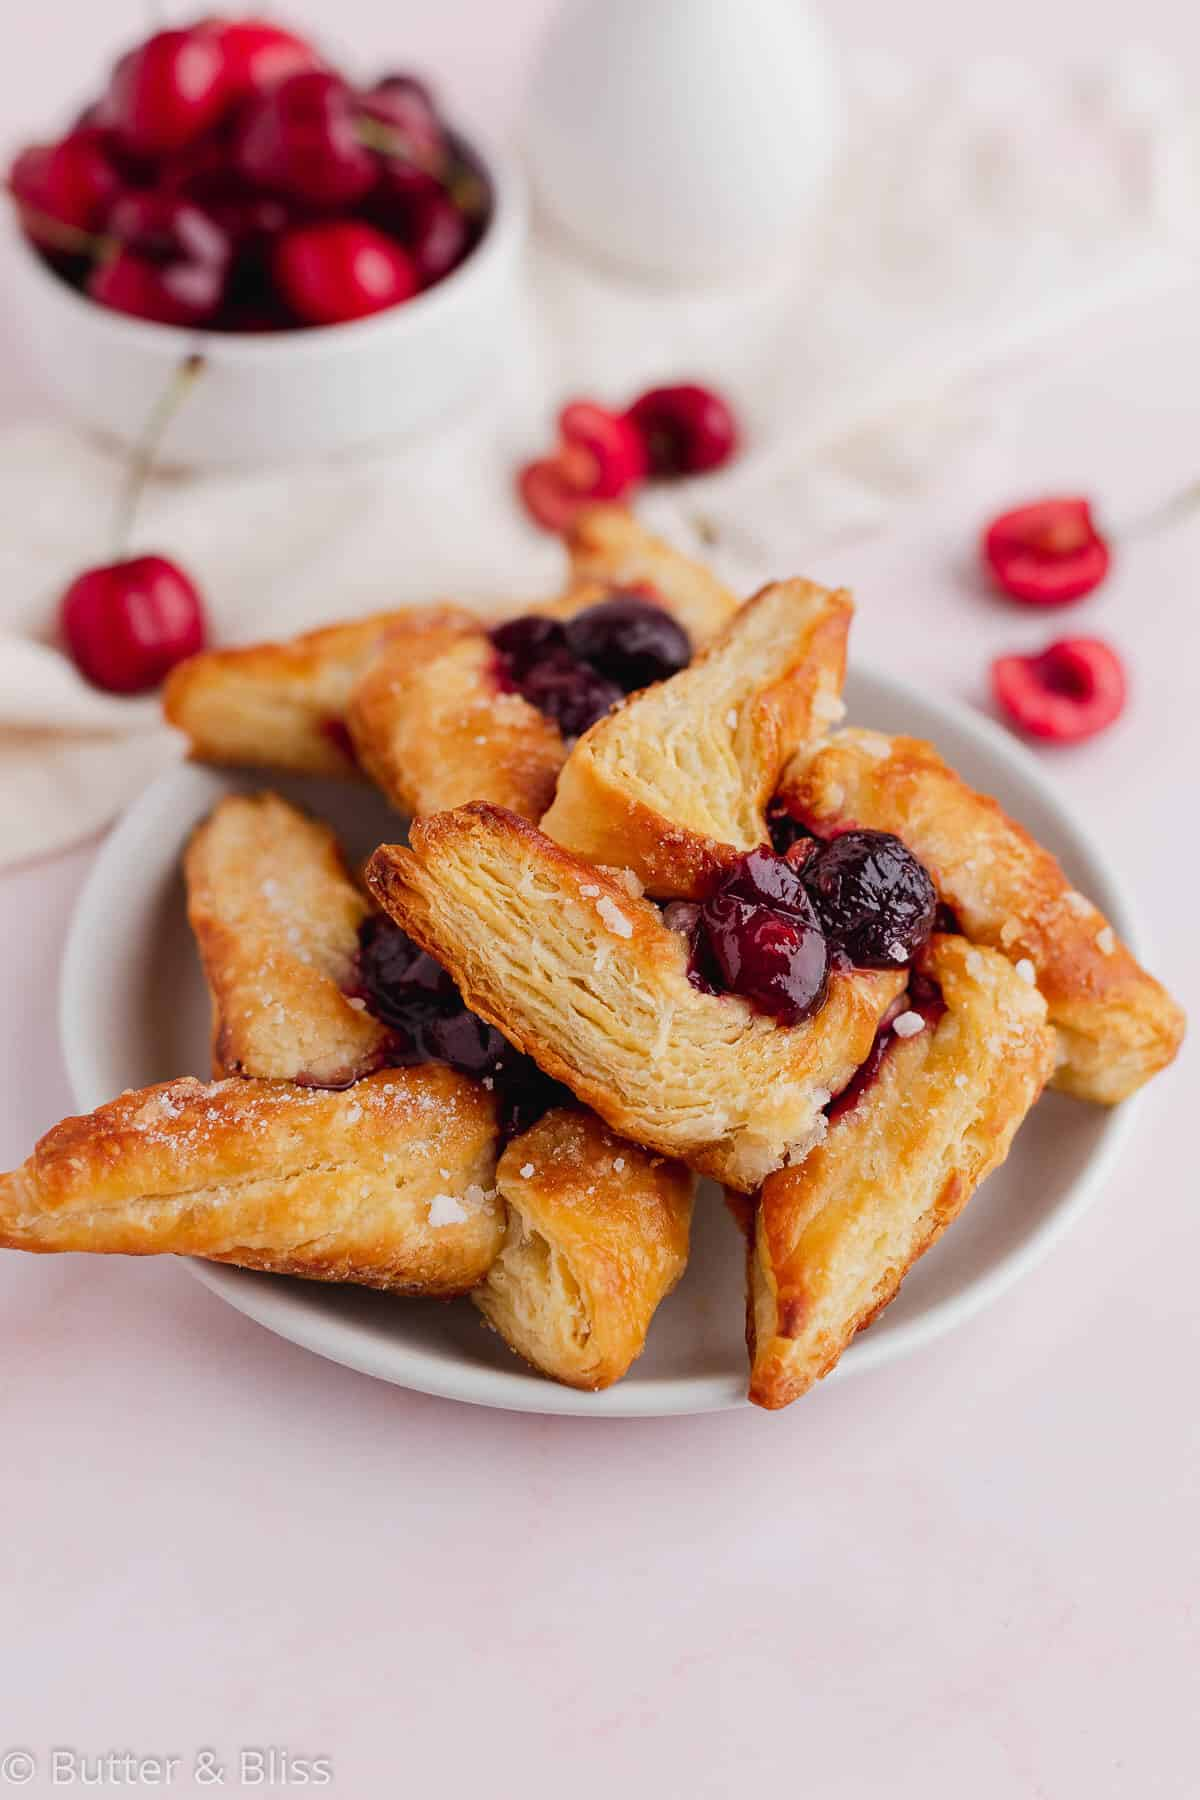 A plate of cherry filled danish patries